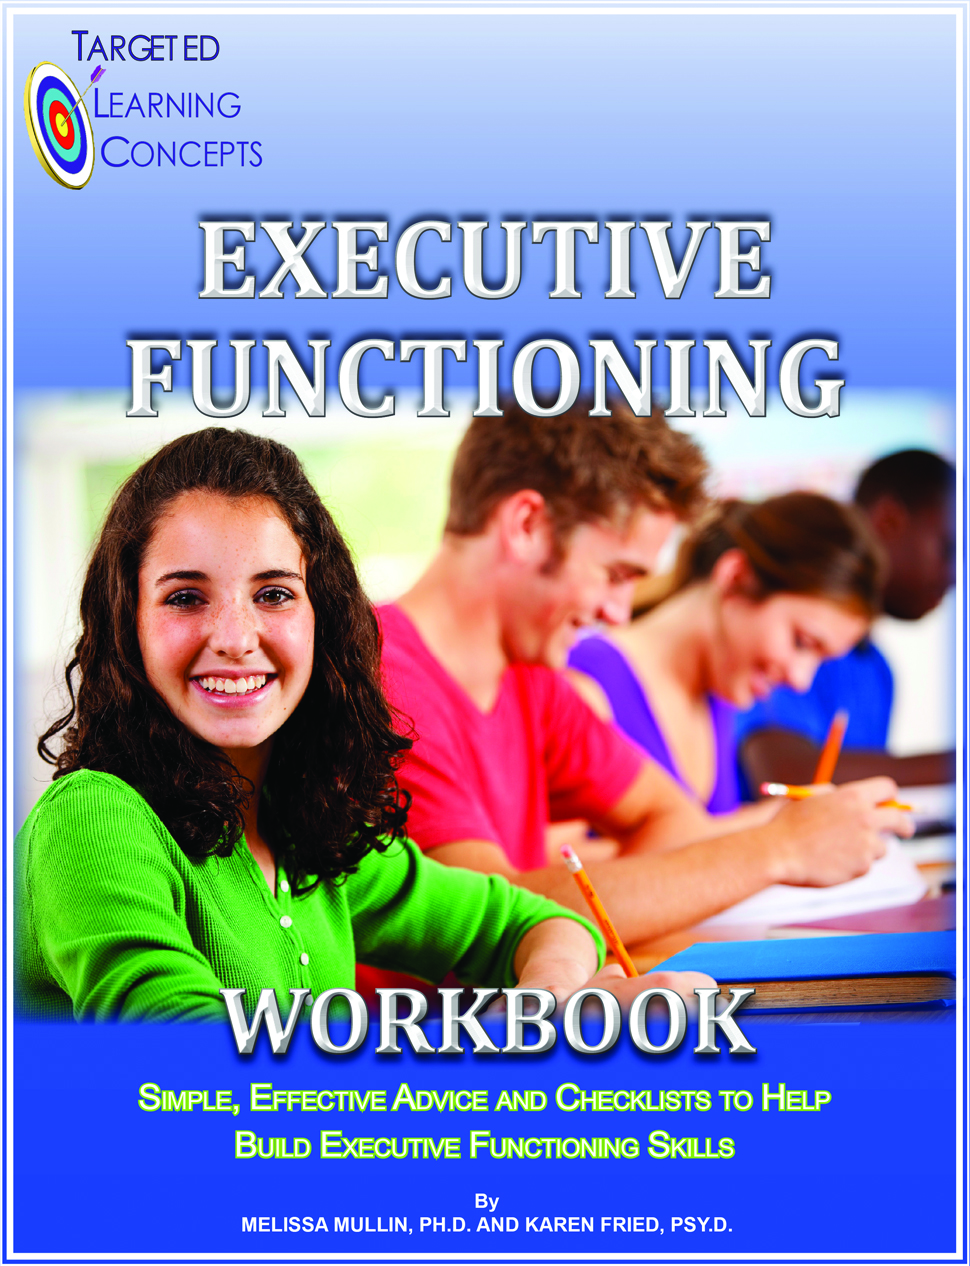 Student Executive Functioning workbook